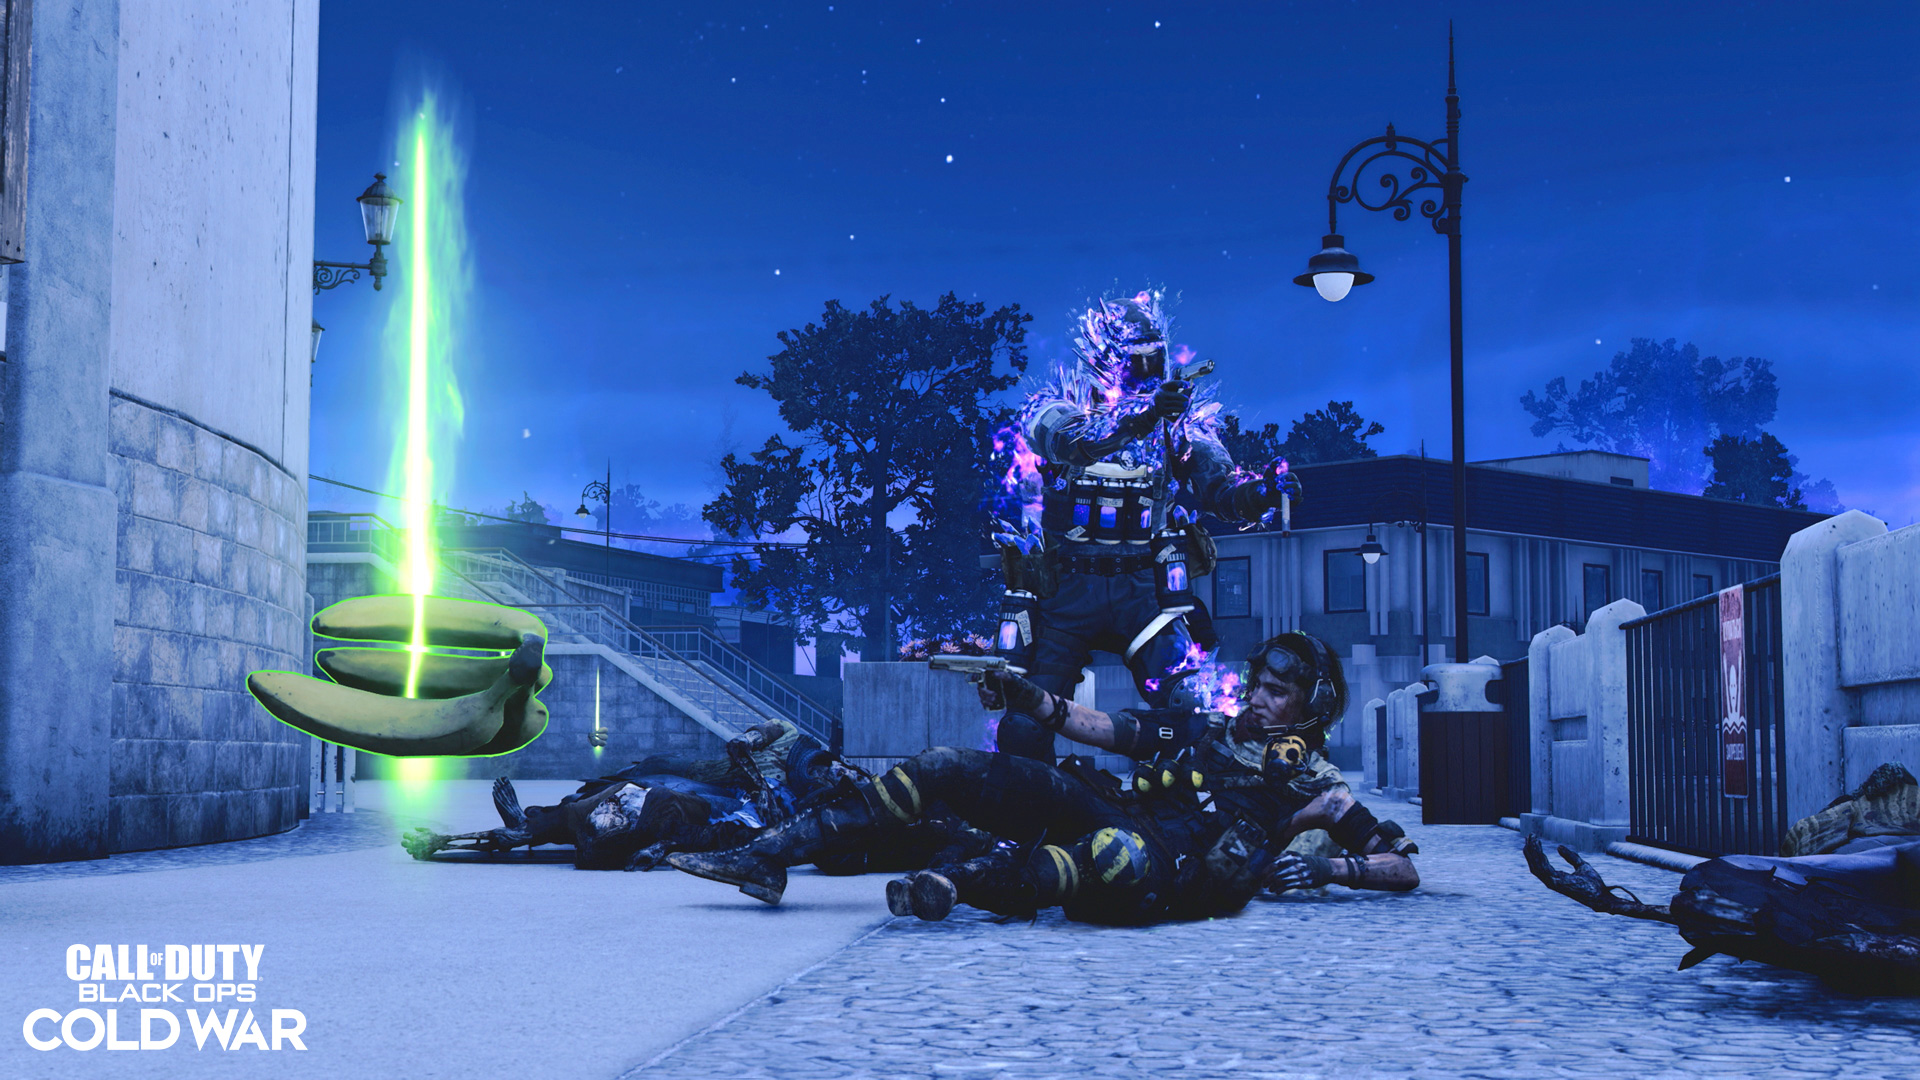 cold war zombies Outbreak LTM